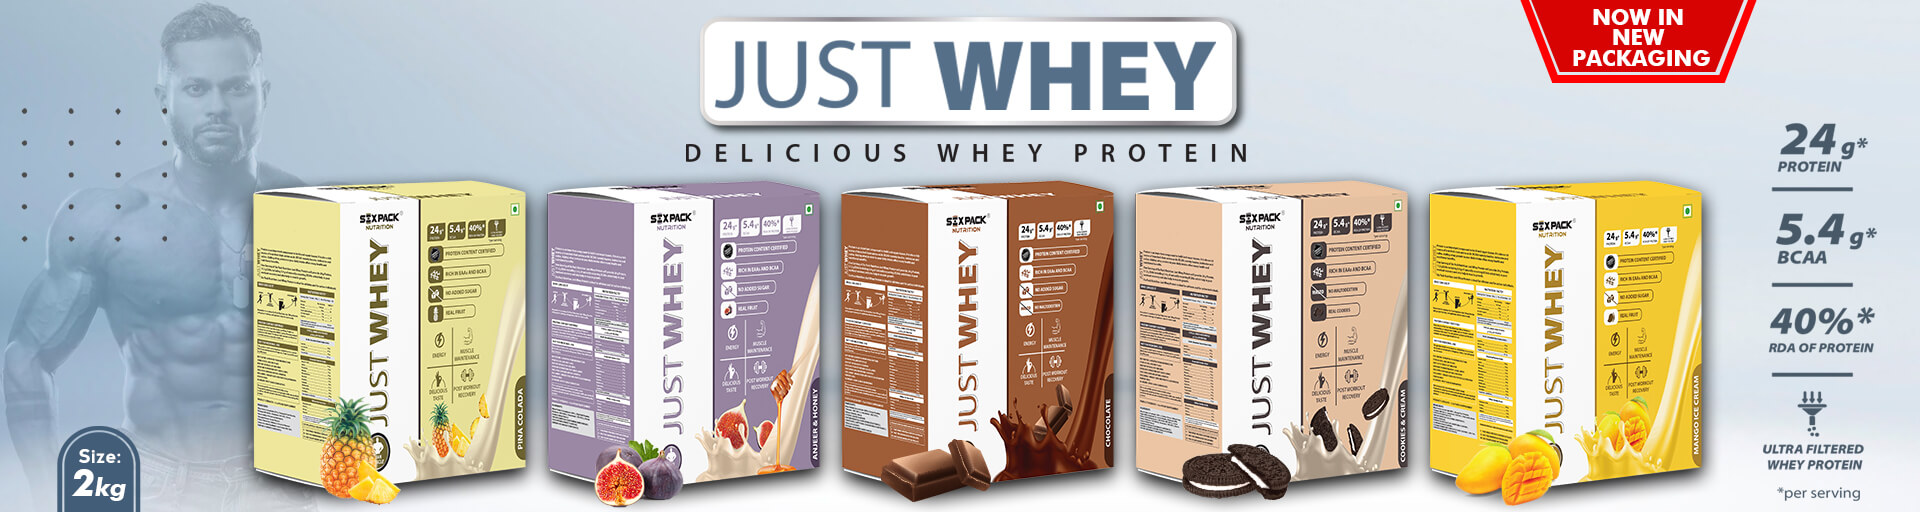 Just-Whey